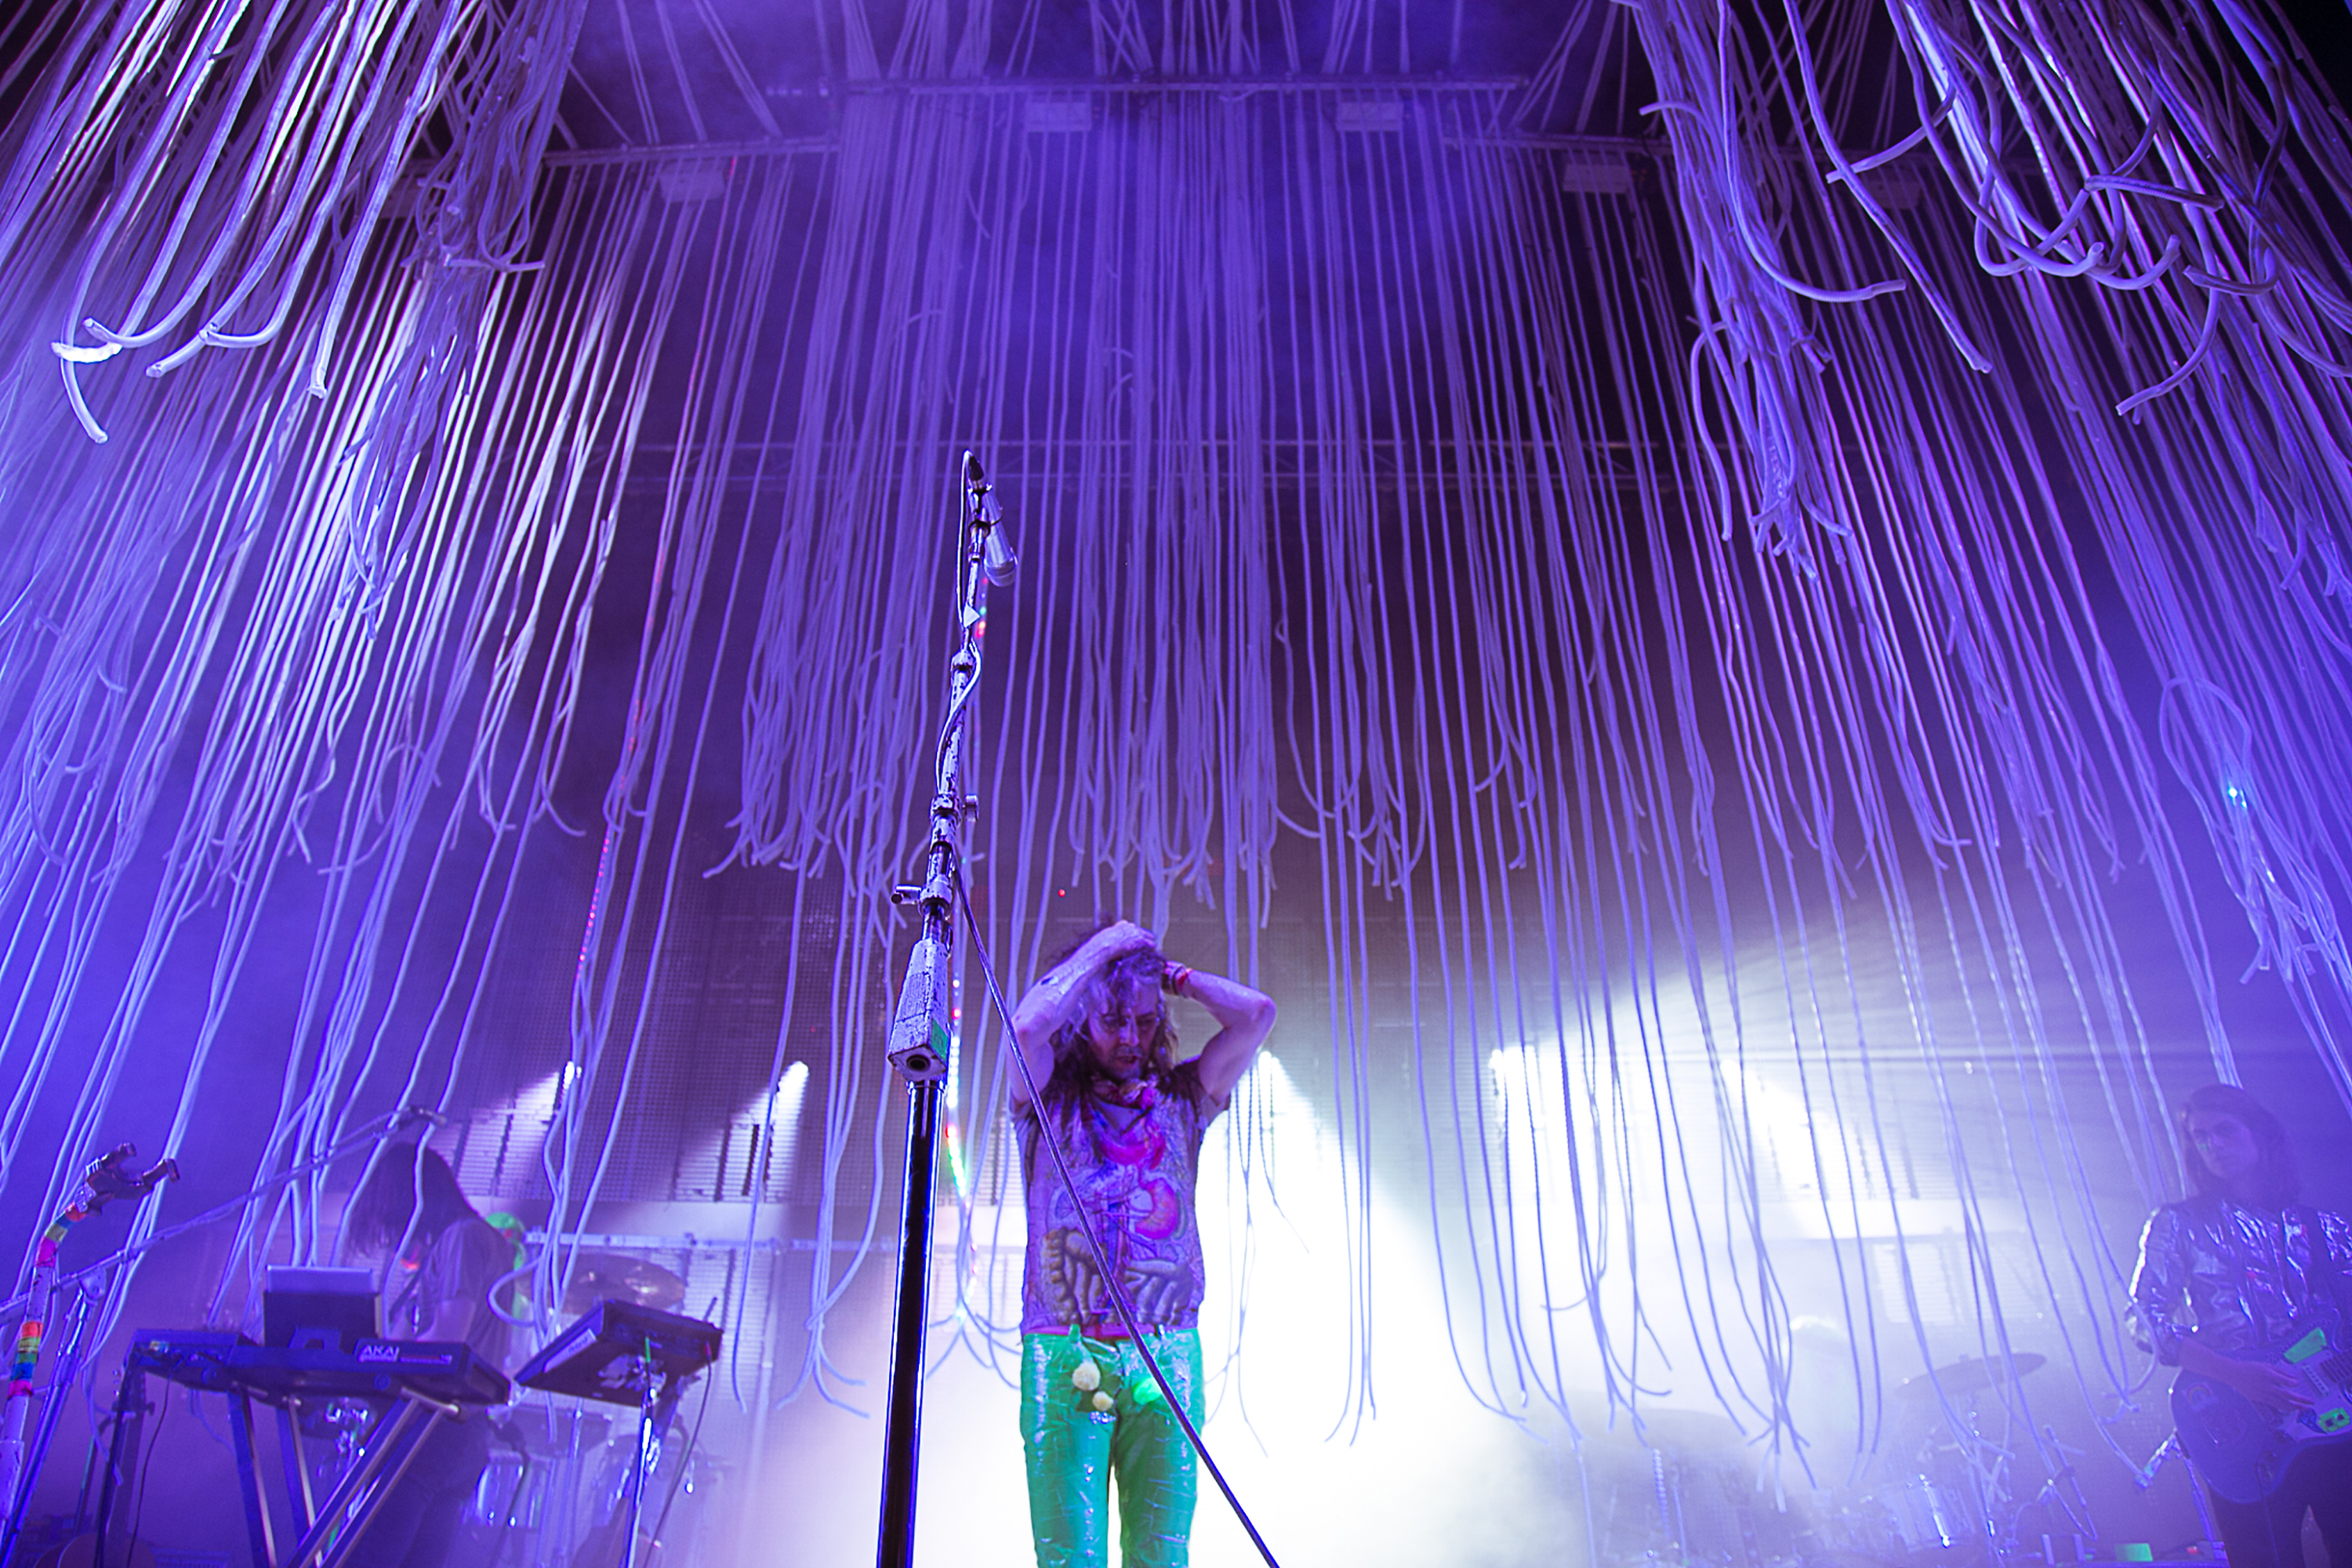 Purple Lighting and Streamers